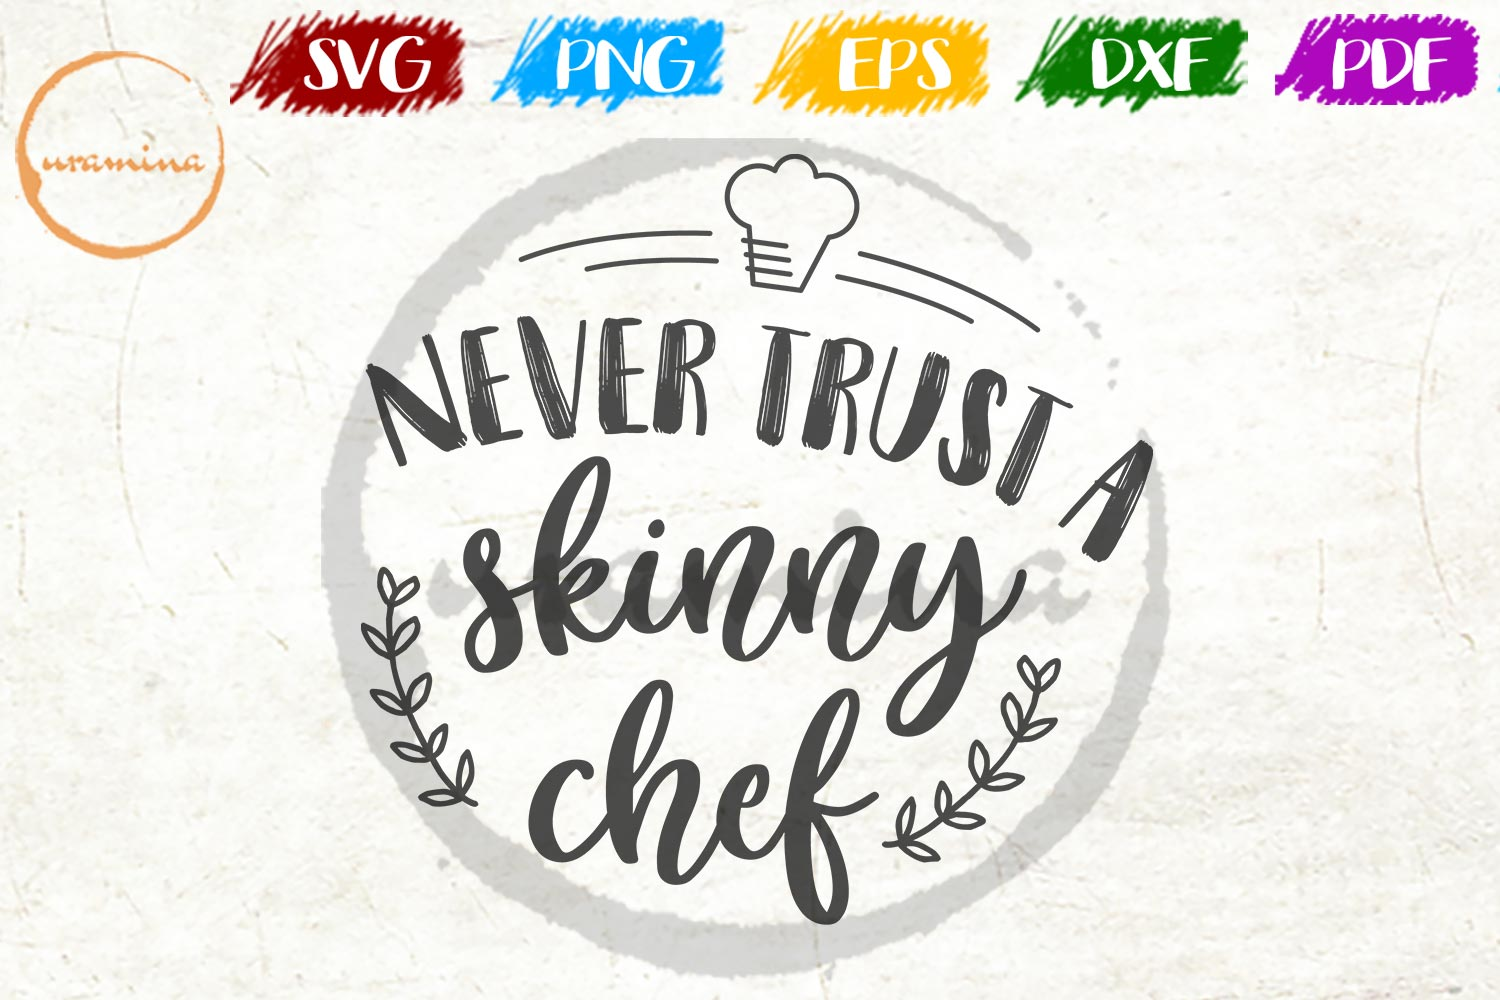 Download Free Never Trust A Skinny Chef Graphic By Uramina Creative Fabrica for Cricut Explore, Silhouette and other cutting machines.